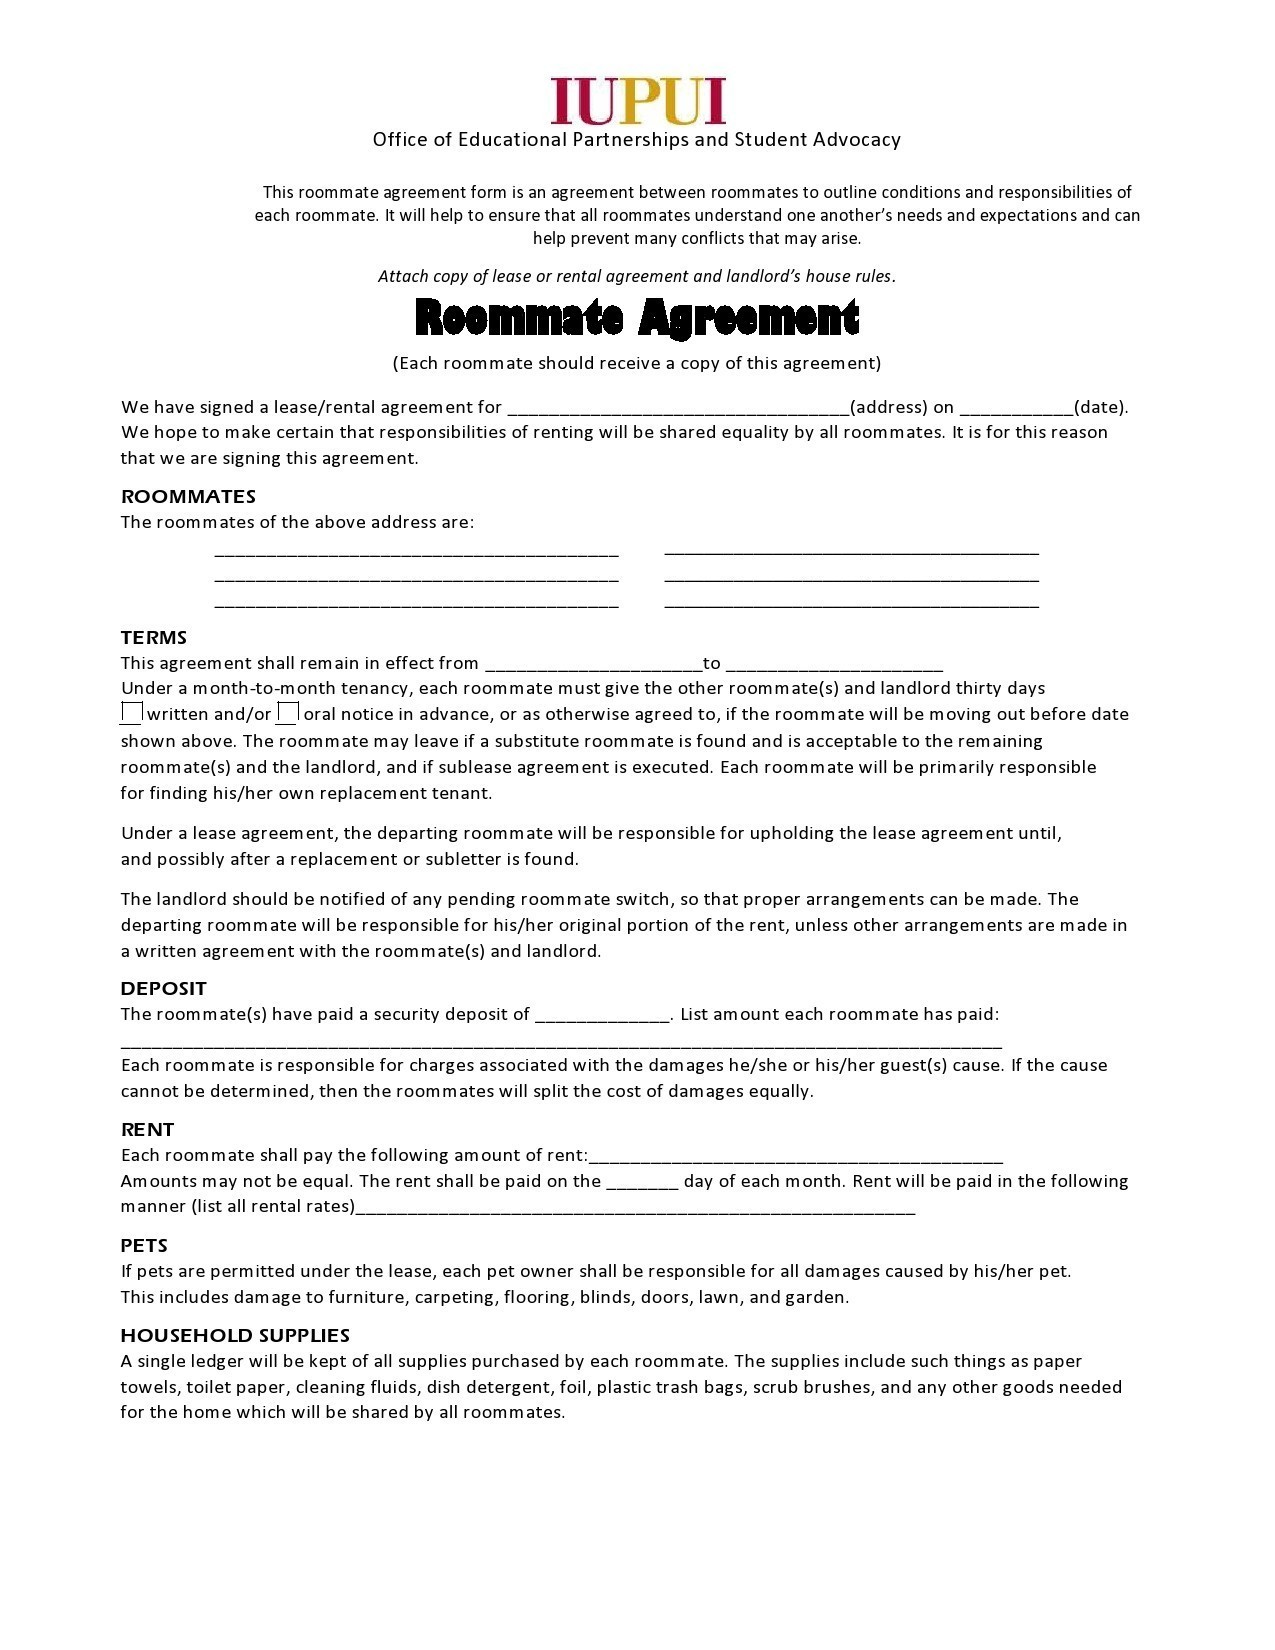 Free roommate agreement template 20